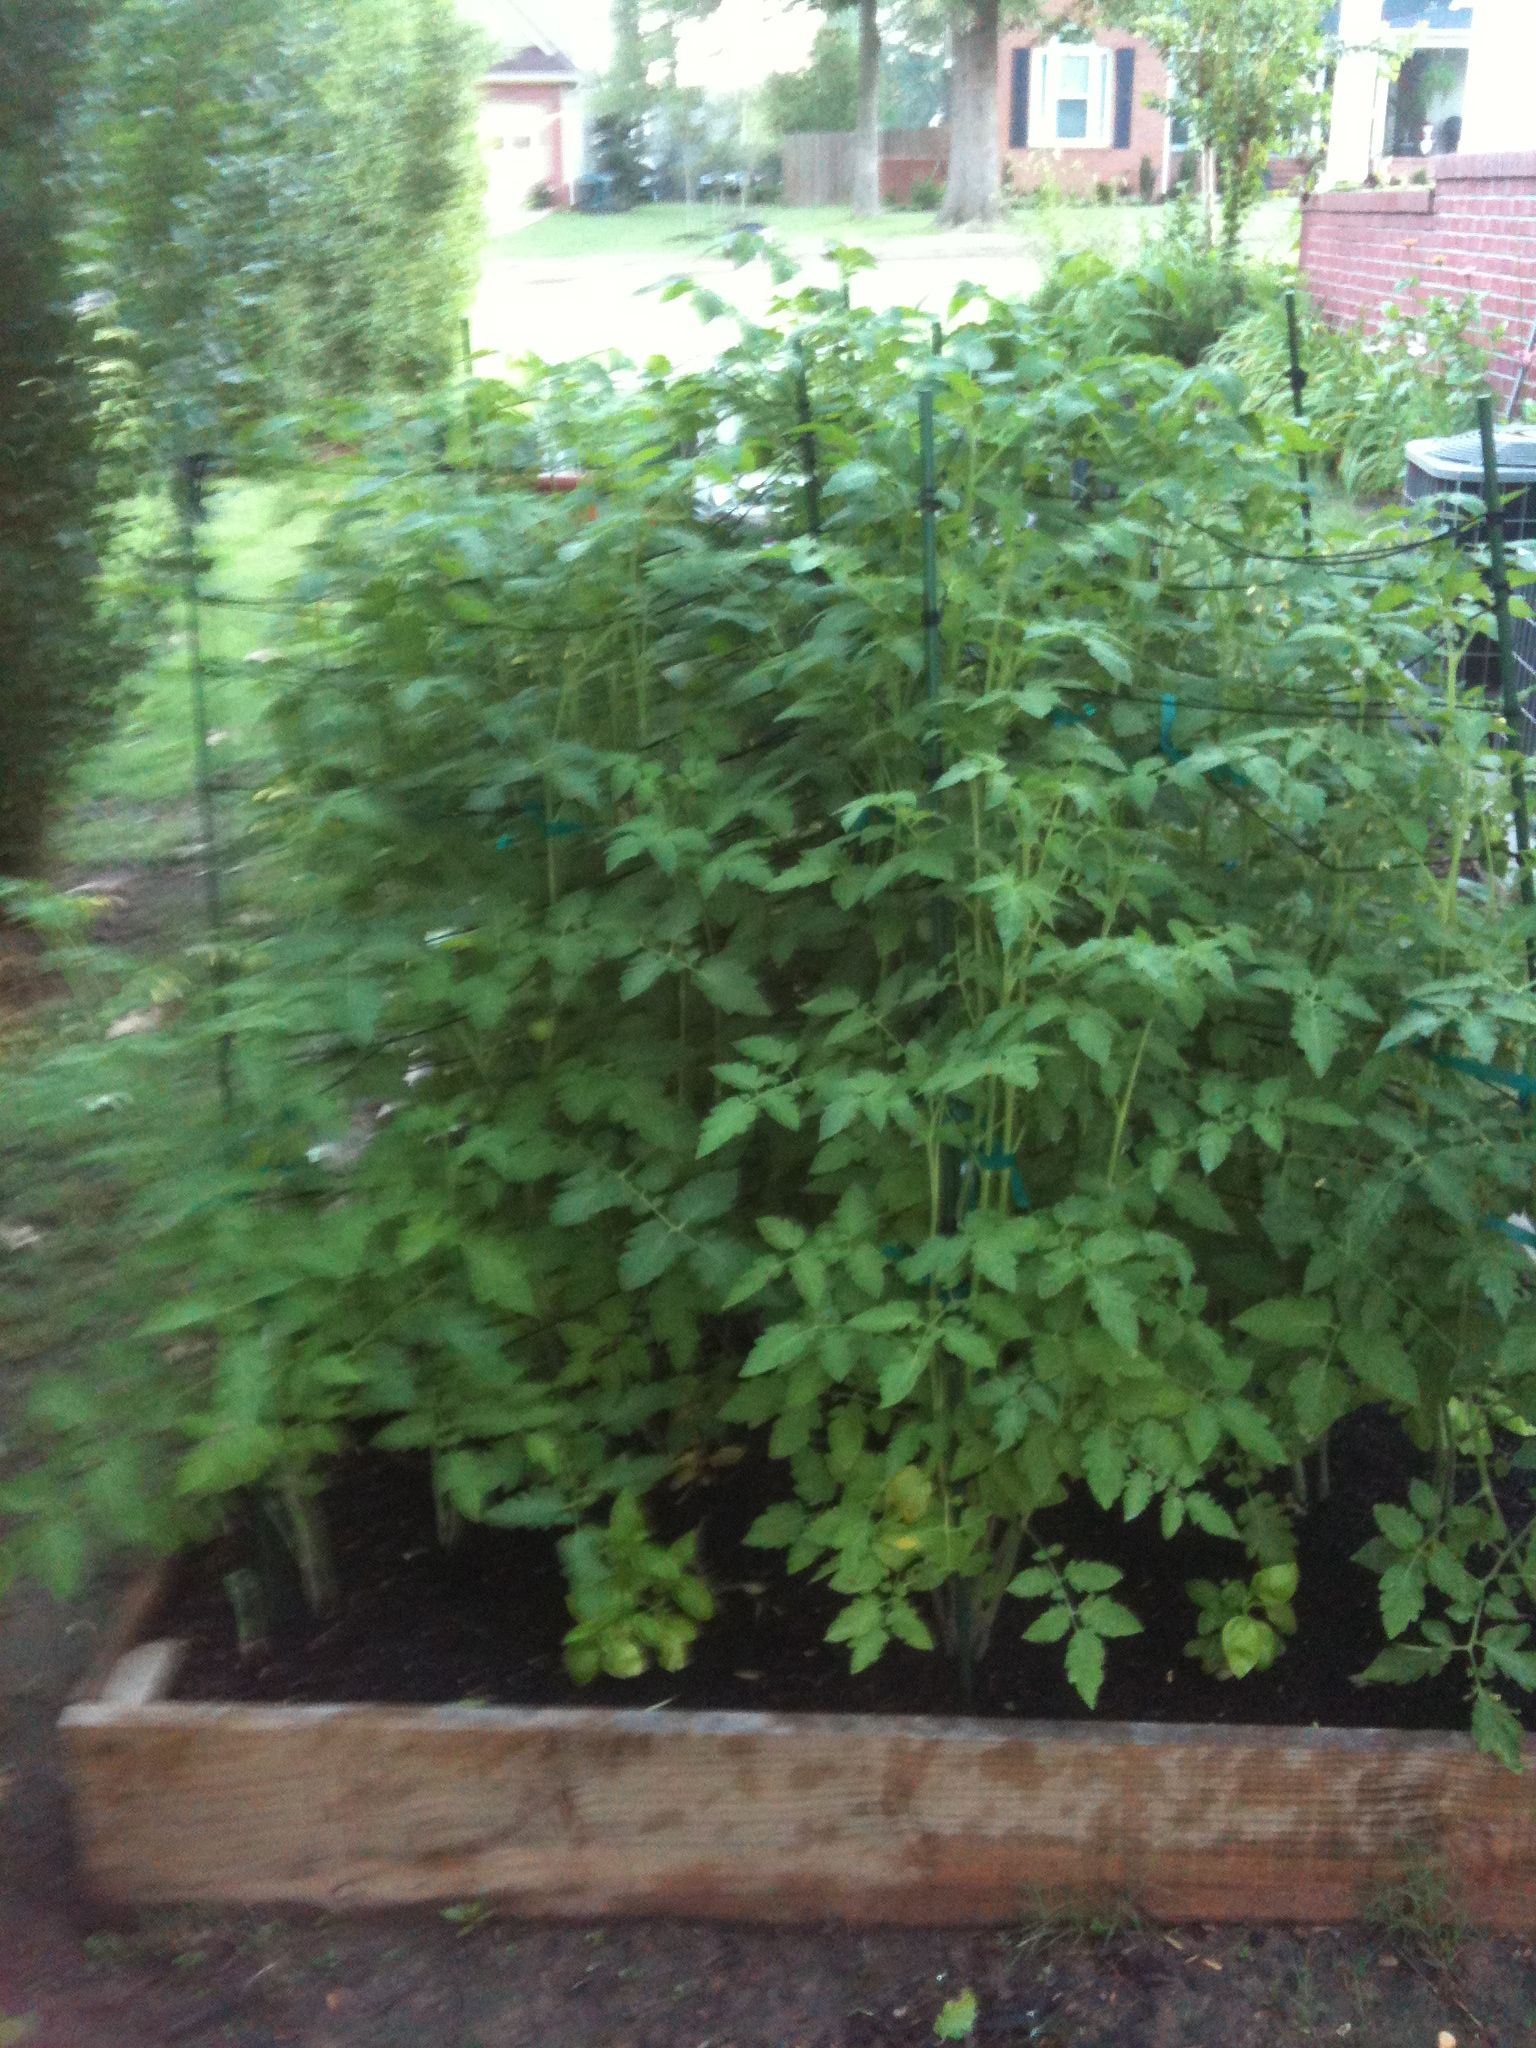 The raised bed filled in with tomatoe plants we had an